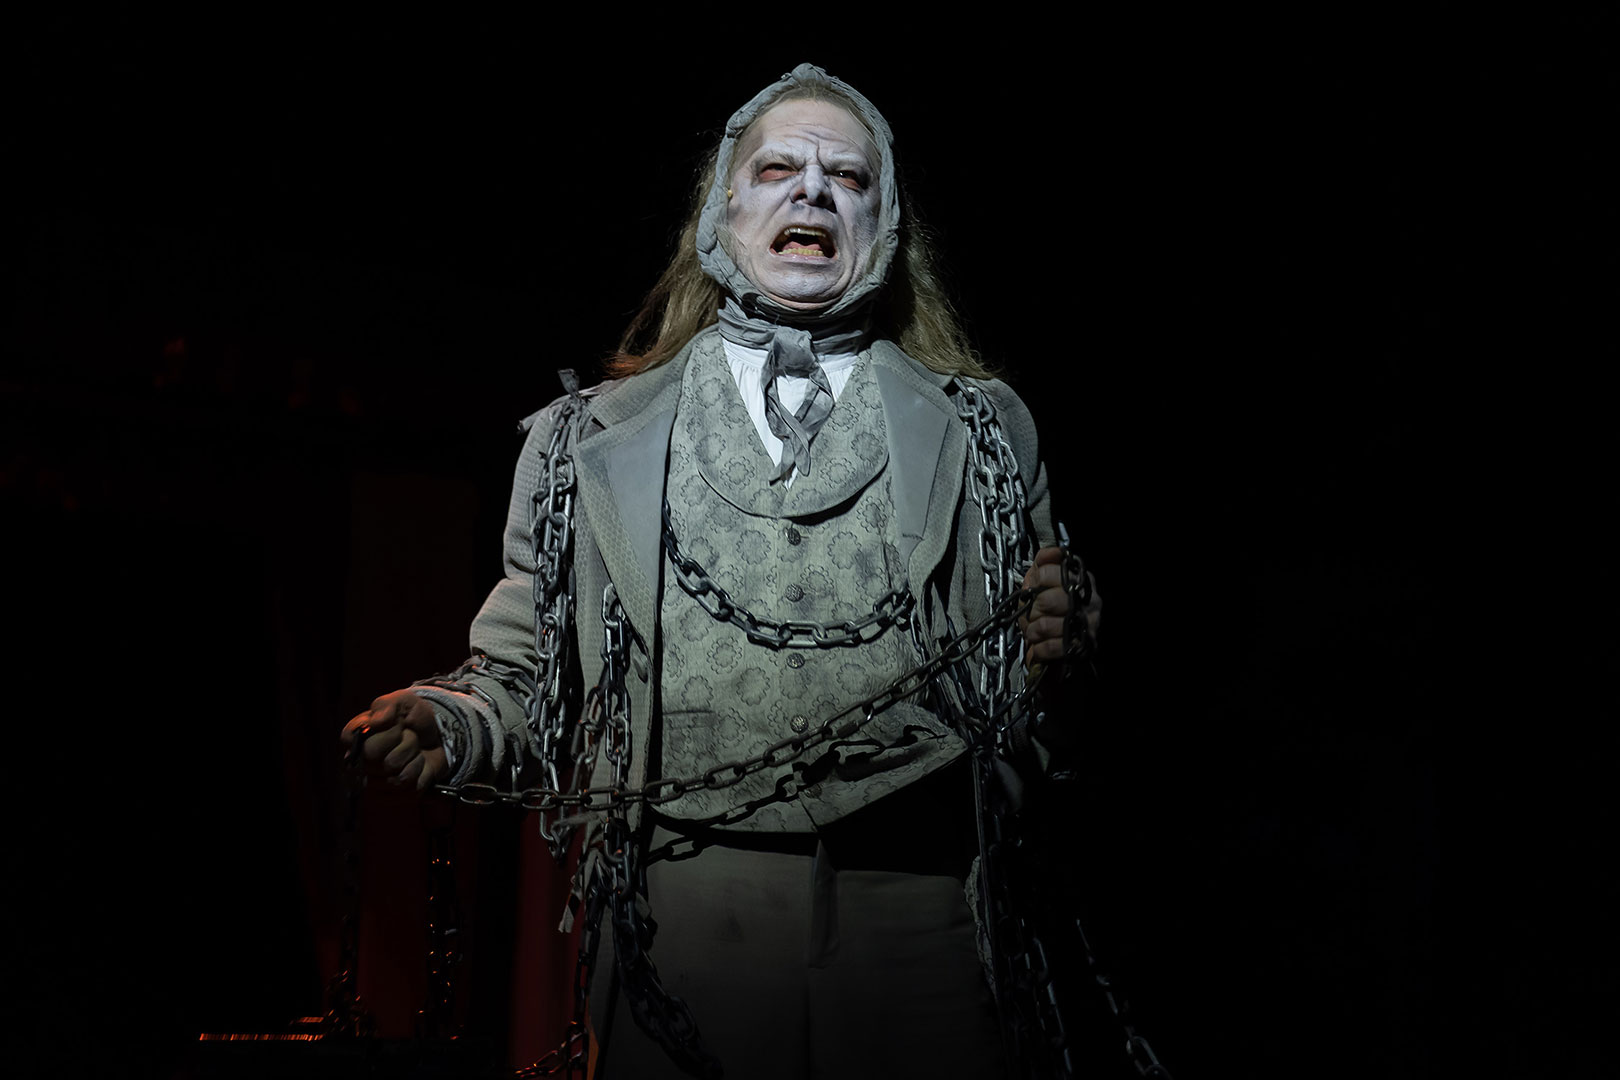 A man with a ghostly-white face and blackened eyes shouts. He wears a nice three-piece Victorian suit, but is wrapped in chains and the suit is grayed out in a ghostly fashion.